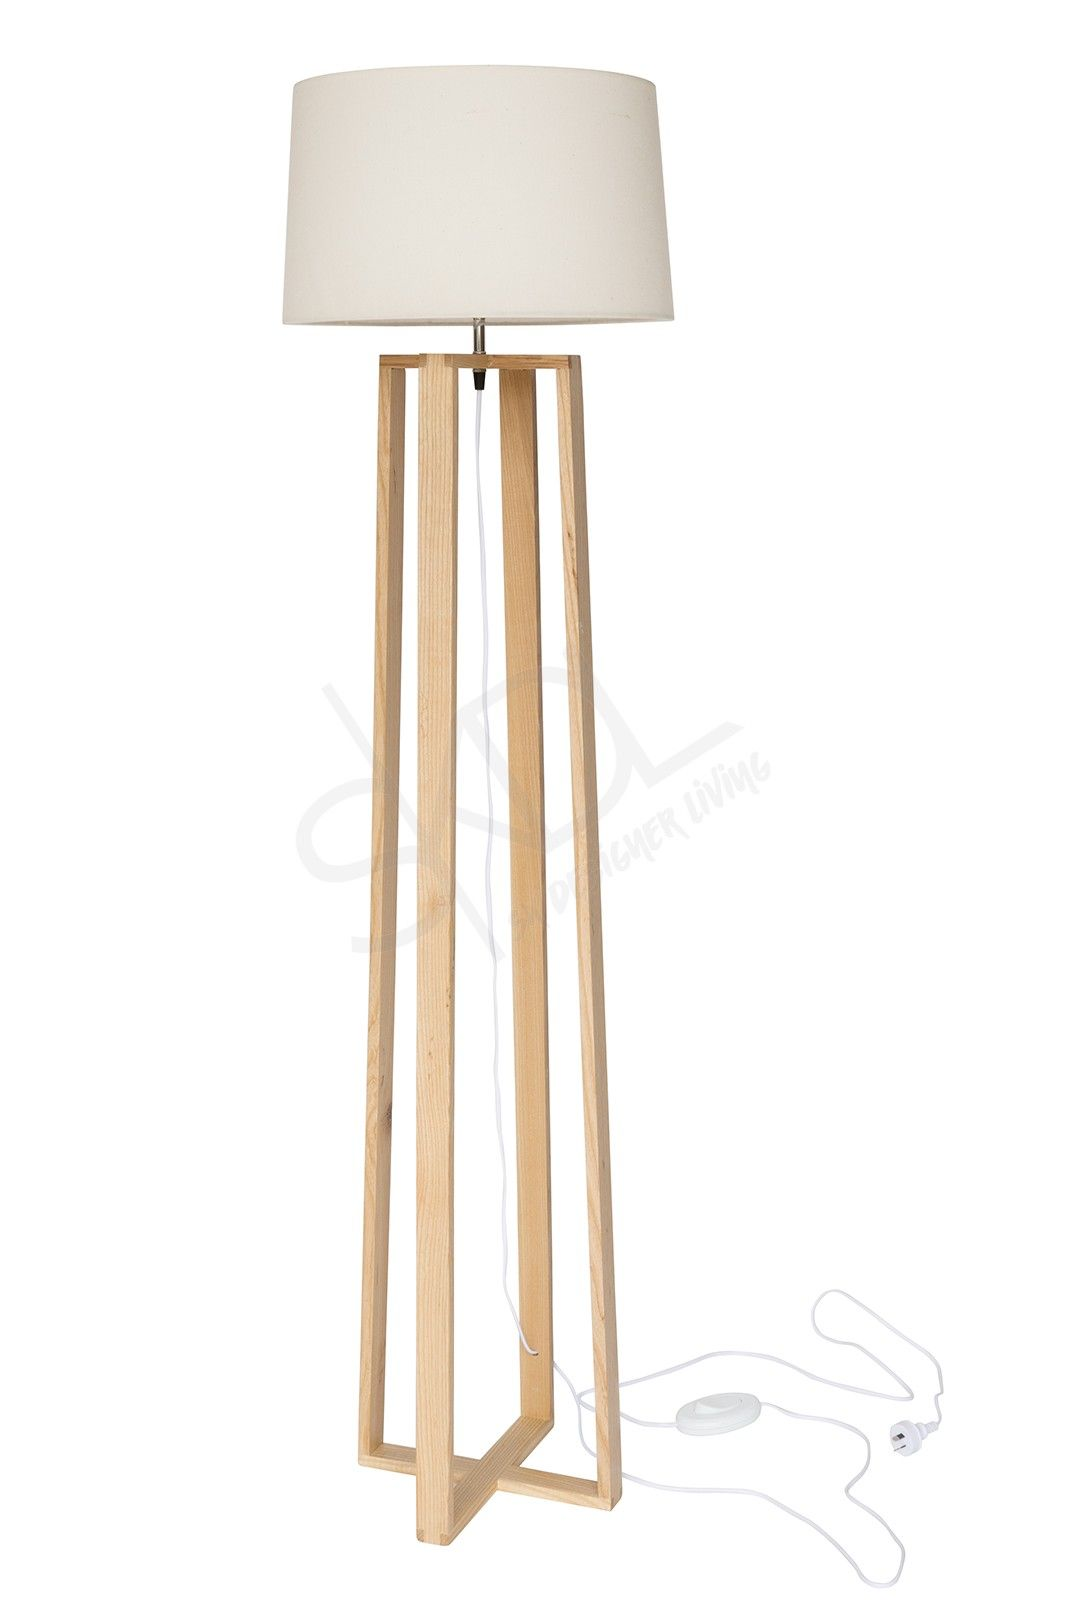 Max Scandinavian Floor Lamp Natural Wood Tripod Ivory Shade Scandinavian Floor Lamps Wooden Floor Lamps Wood Floor Lamp